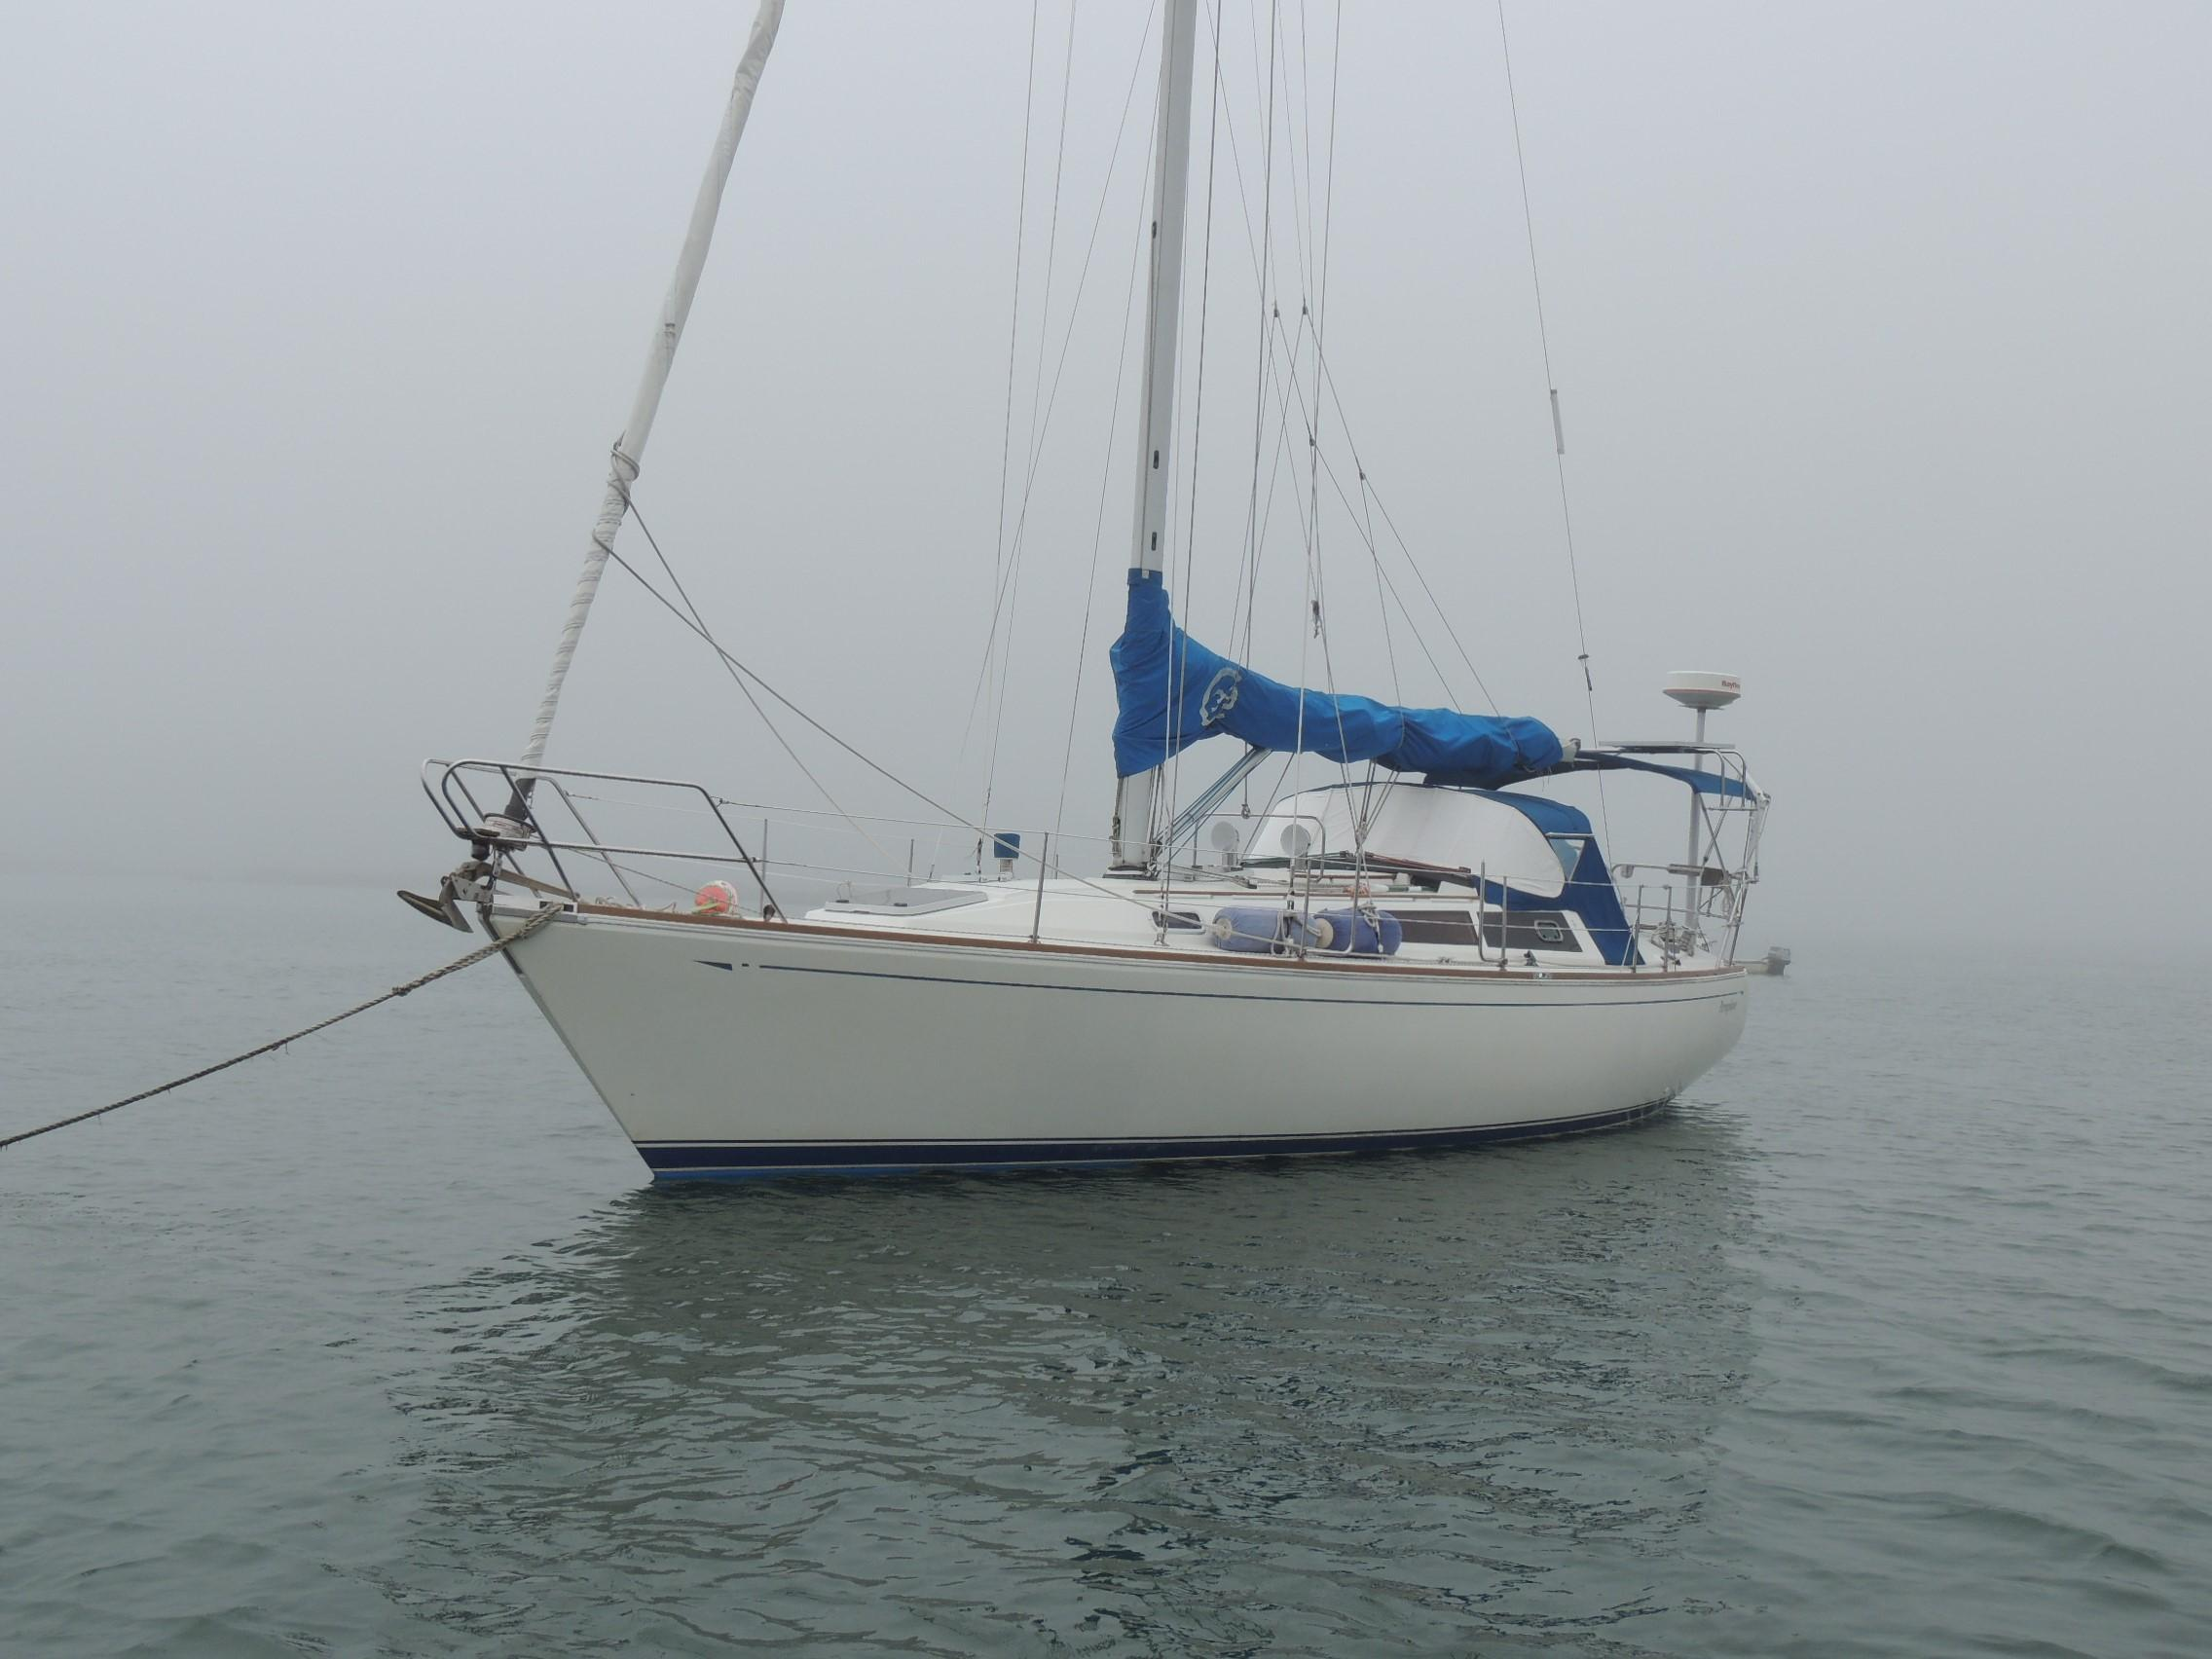 1989 CAL 39 MKIII Wing Keel Sail Boat For Sale Www